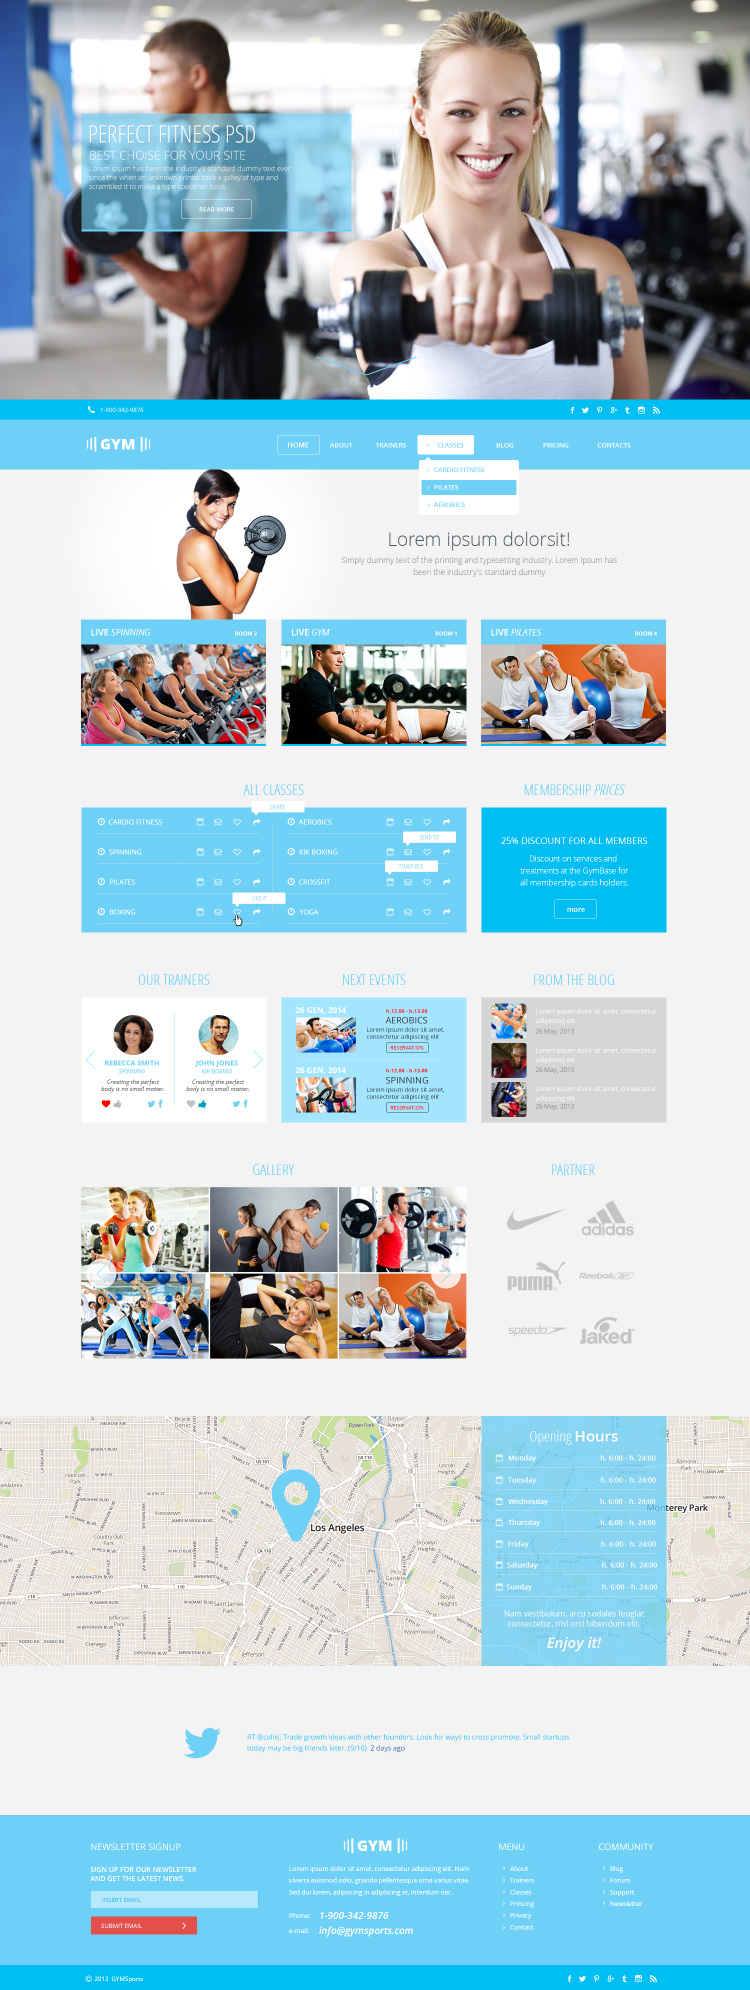 GYMSports PSD Template The Uncreative Lab - Membership website templates free